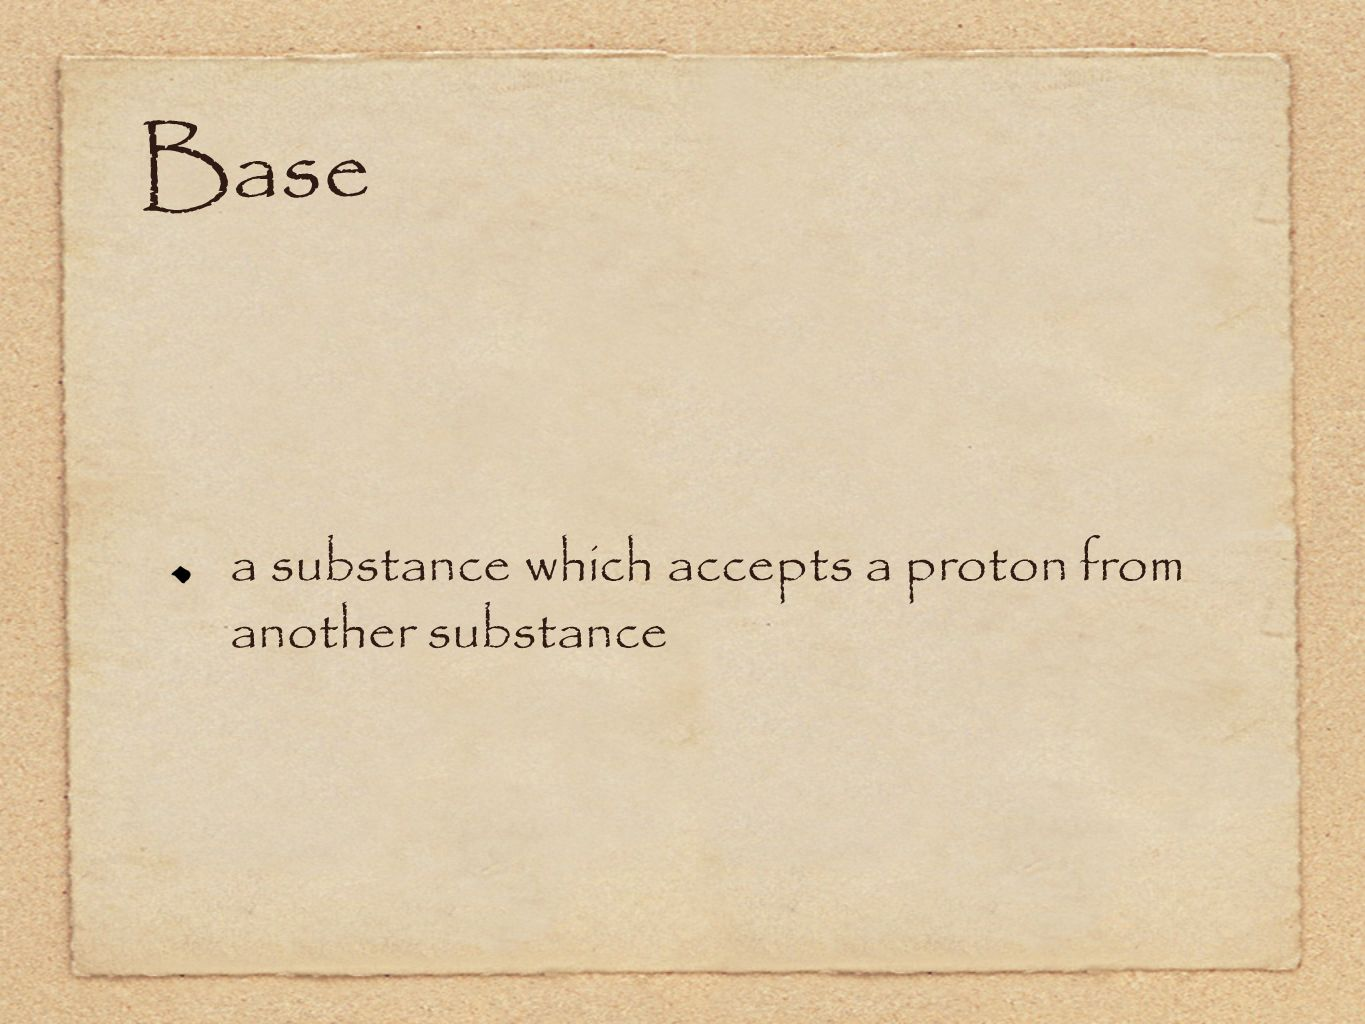 Base a substance which accepts a proton from another substance